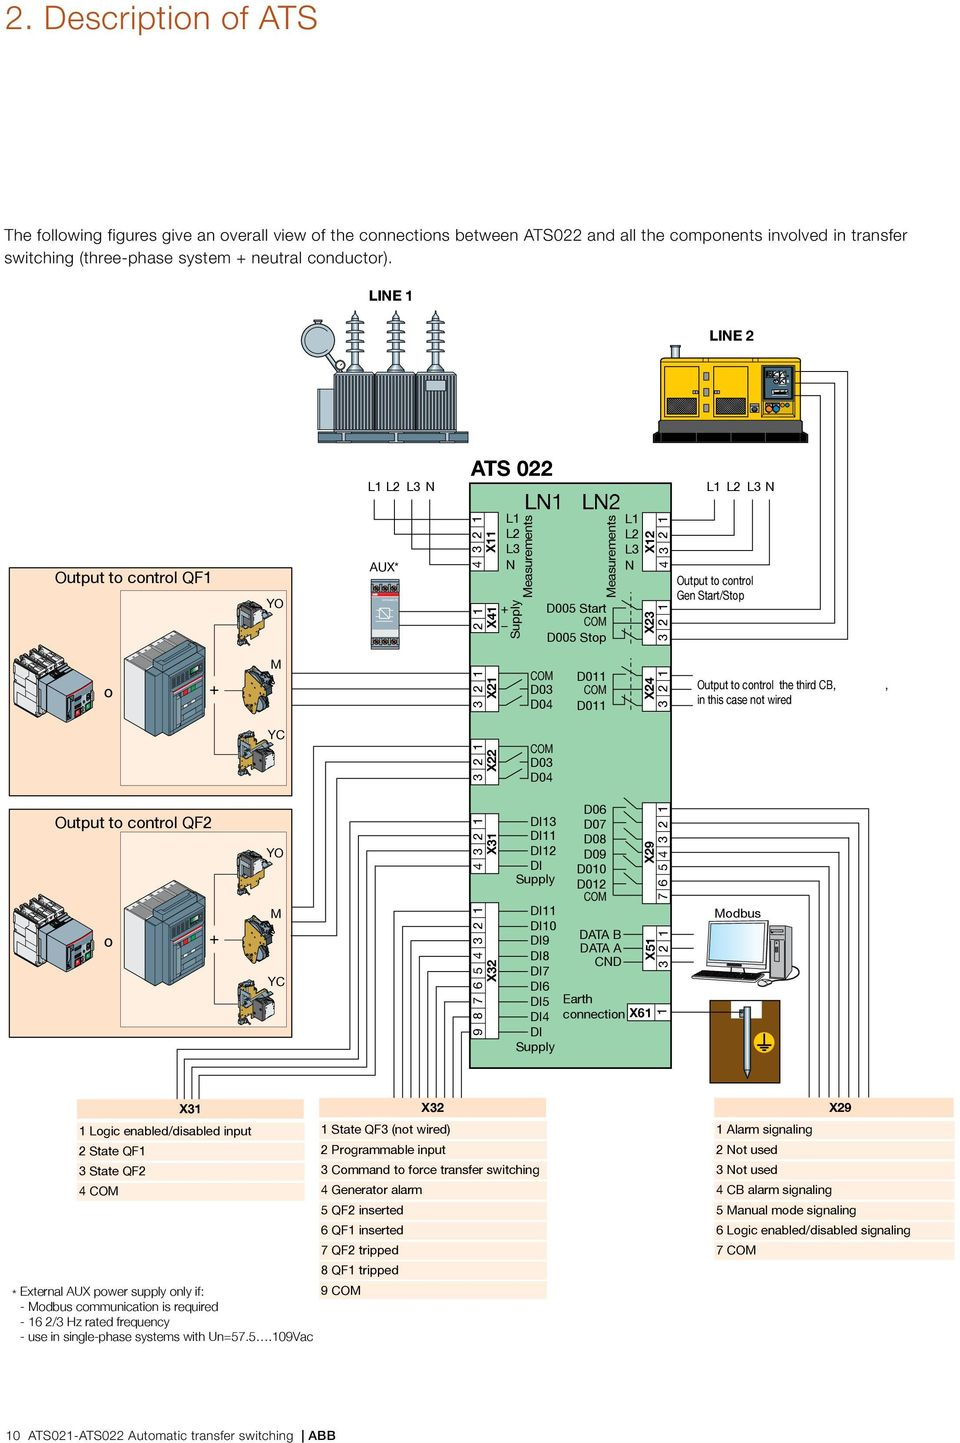 White Paper - July ATS021-ATS022 Automatic transfer ... on